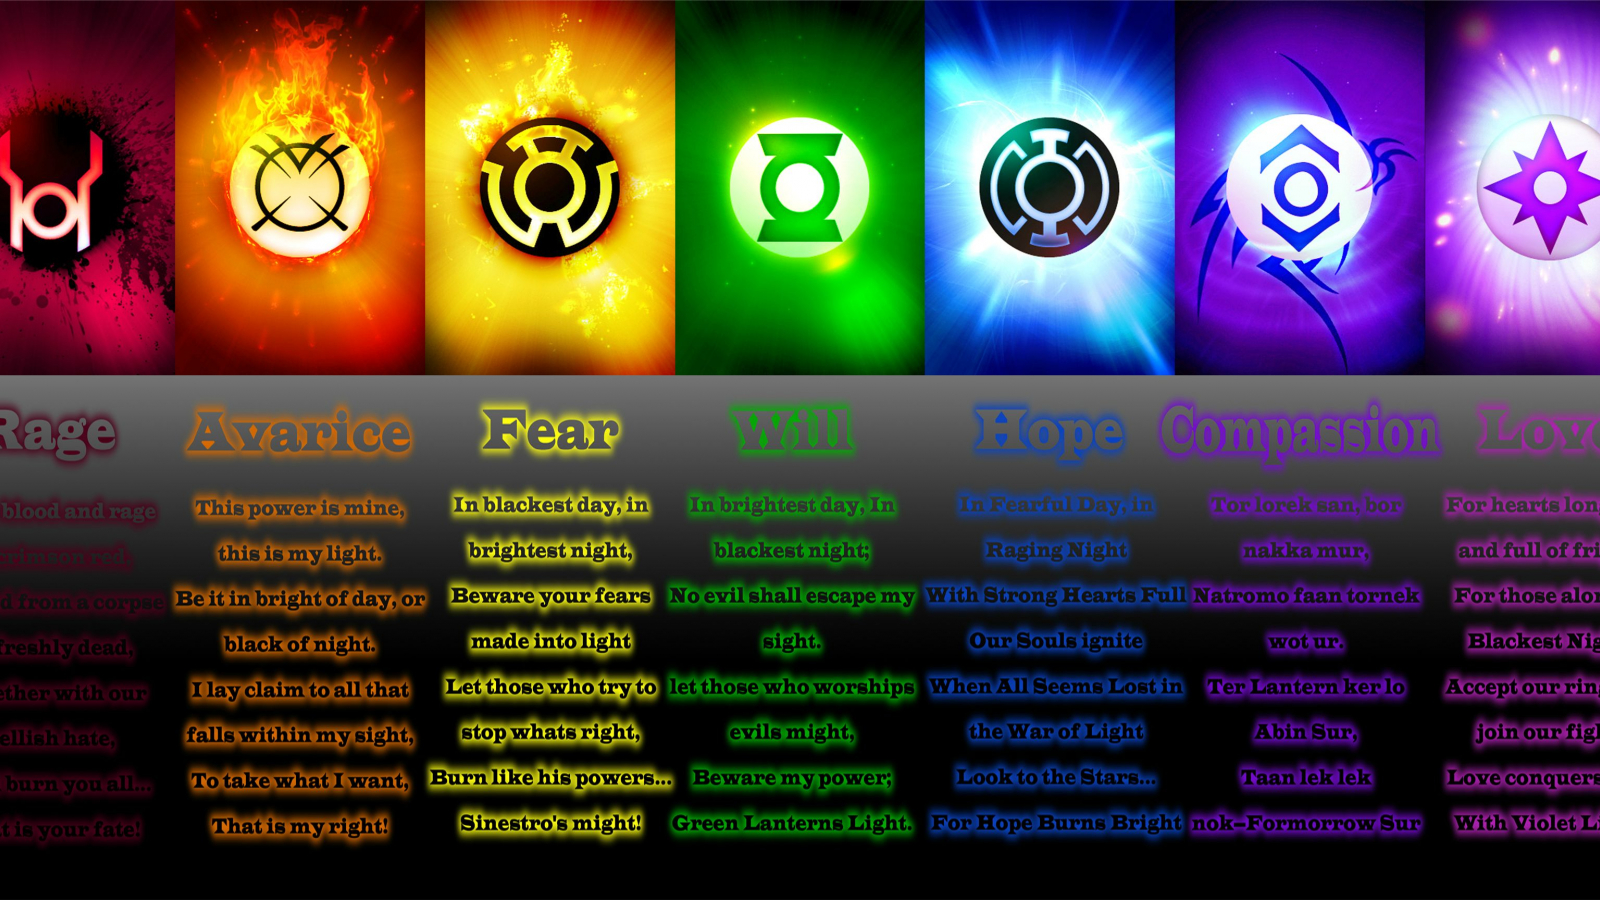 Free download All 9 Lantern Corps Oaths HD Walls Find ...